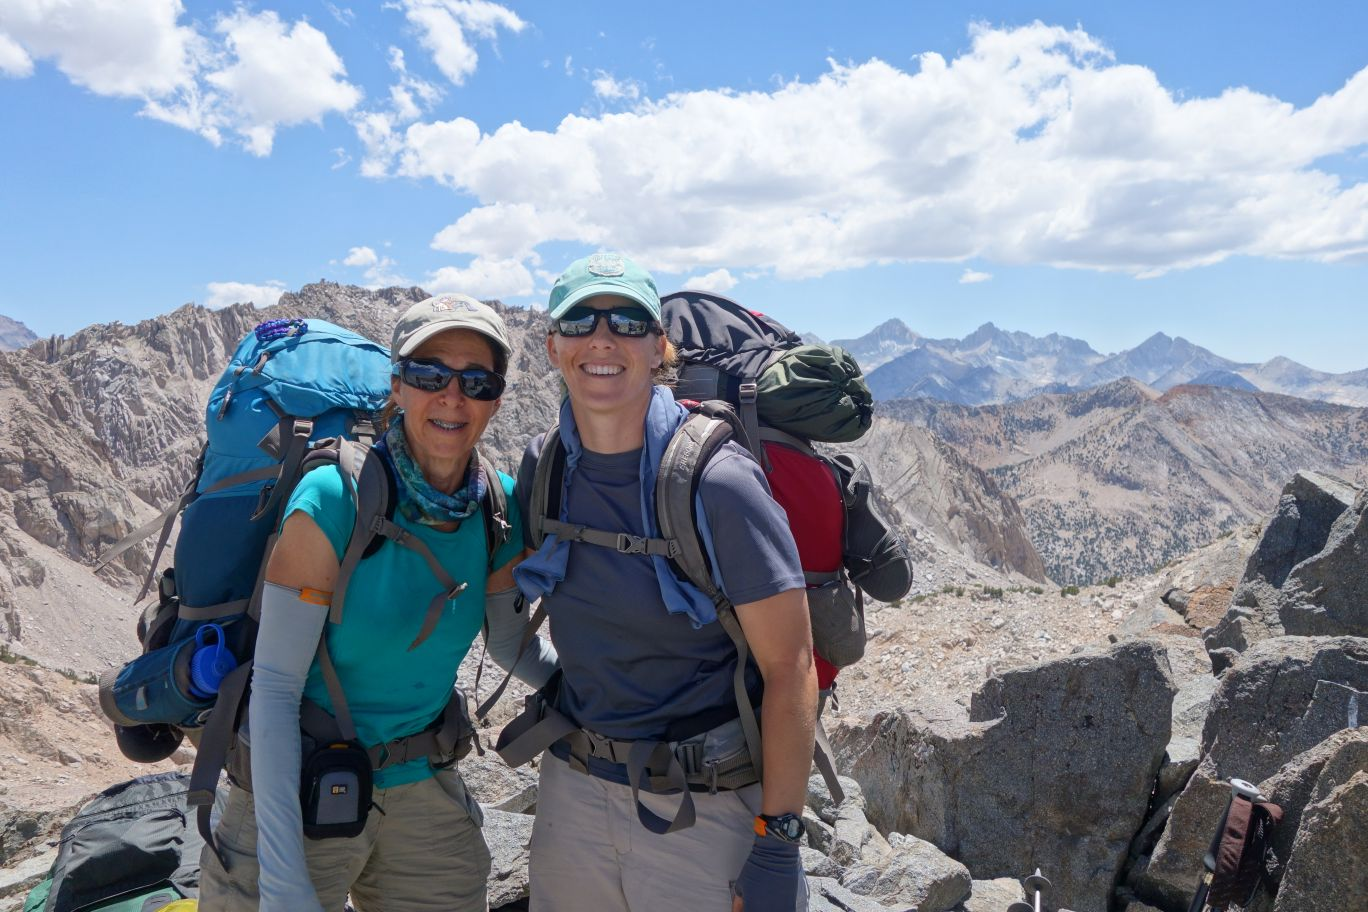 two female backpackers wearing sungasses and hats stand together high in the mountains